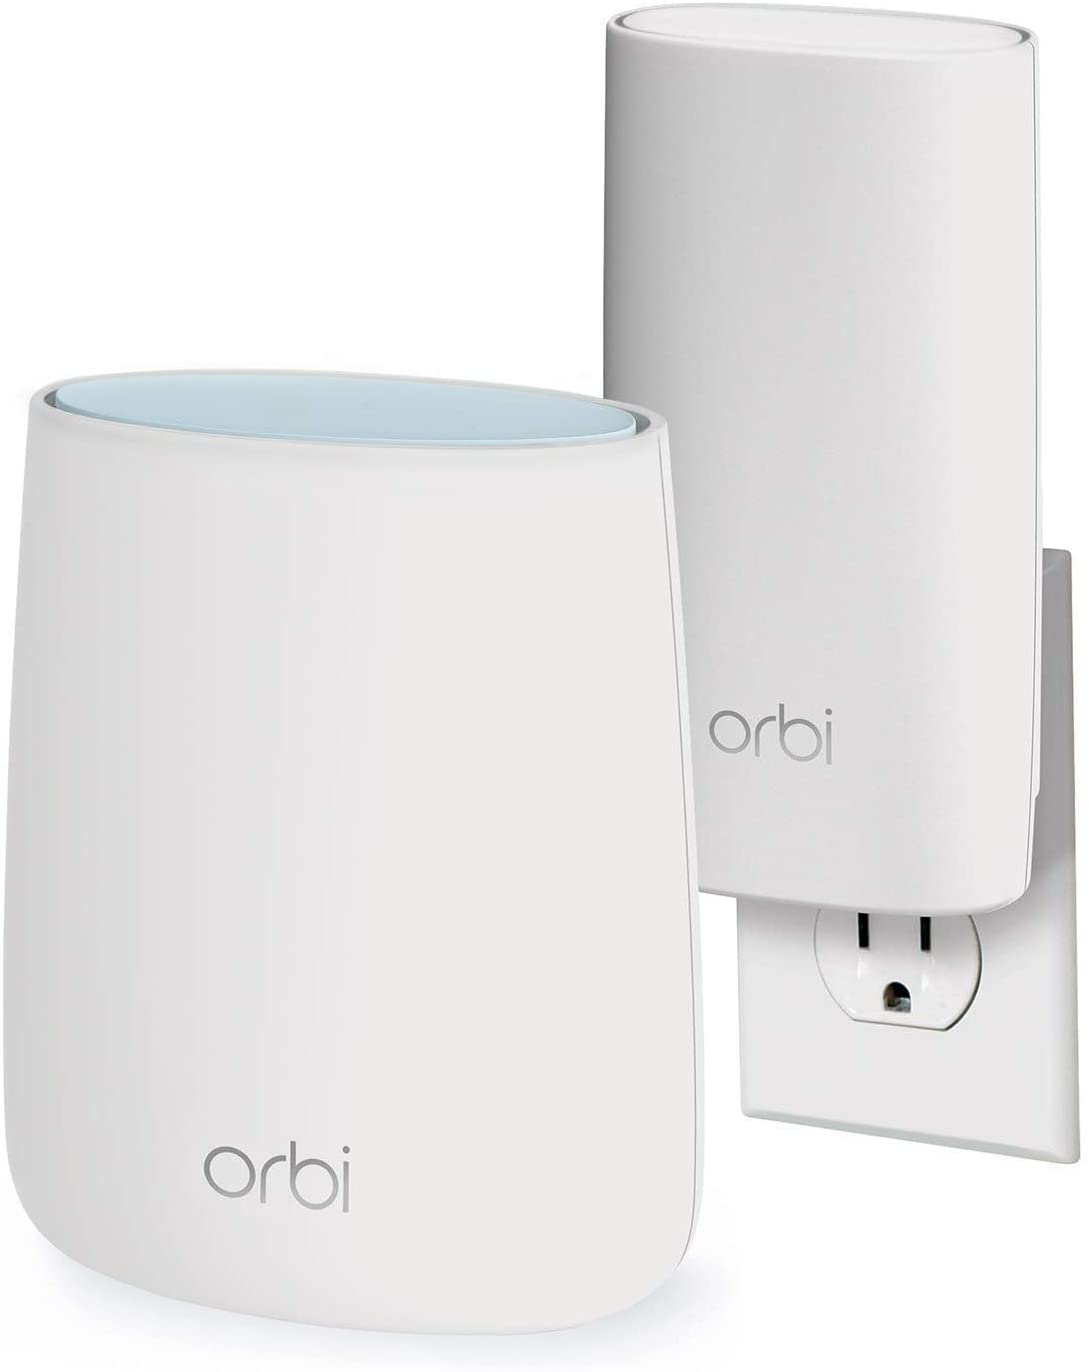 NETGEAR Orbi Compact Wall-Plug Whole Home Mesh WiFi System - WiFi Router and Wall-Plug Satellite Extender with speeds up to 2.2 Gbps Over 3,500 sq. feet, AC2200 (RBK20W)